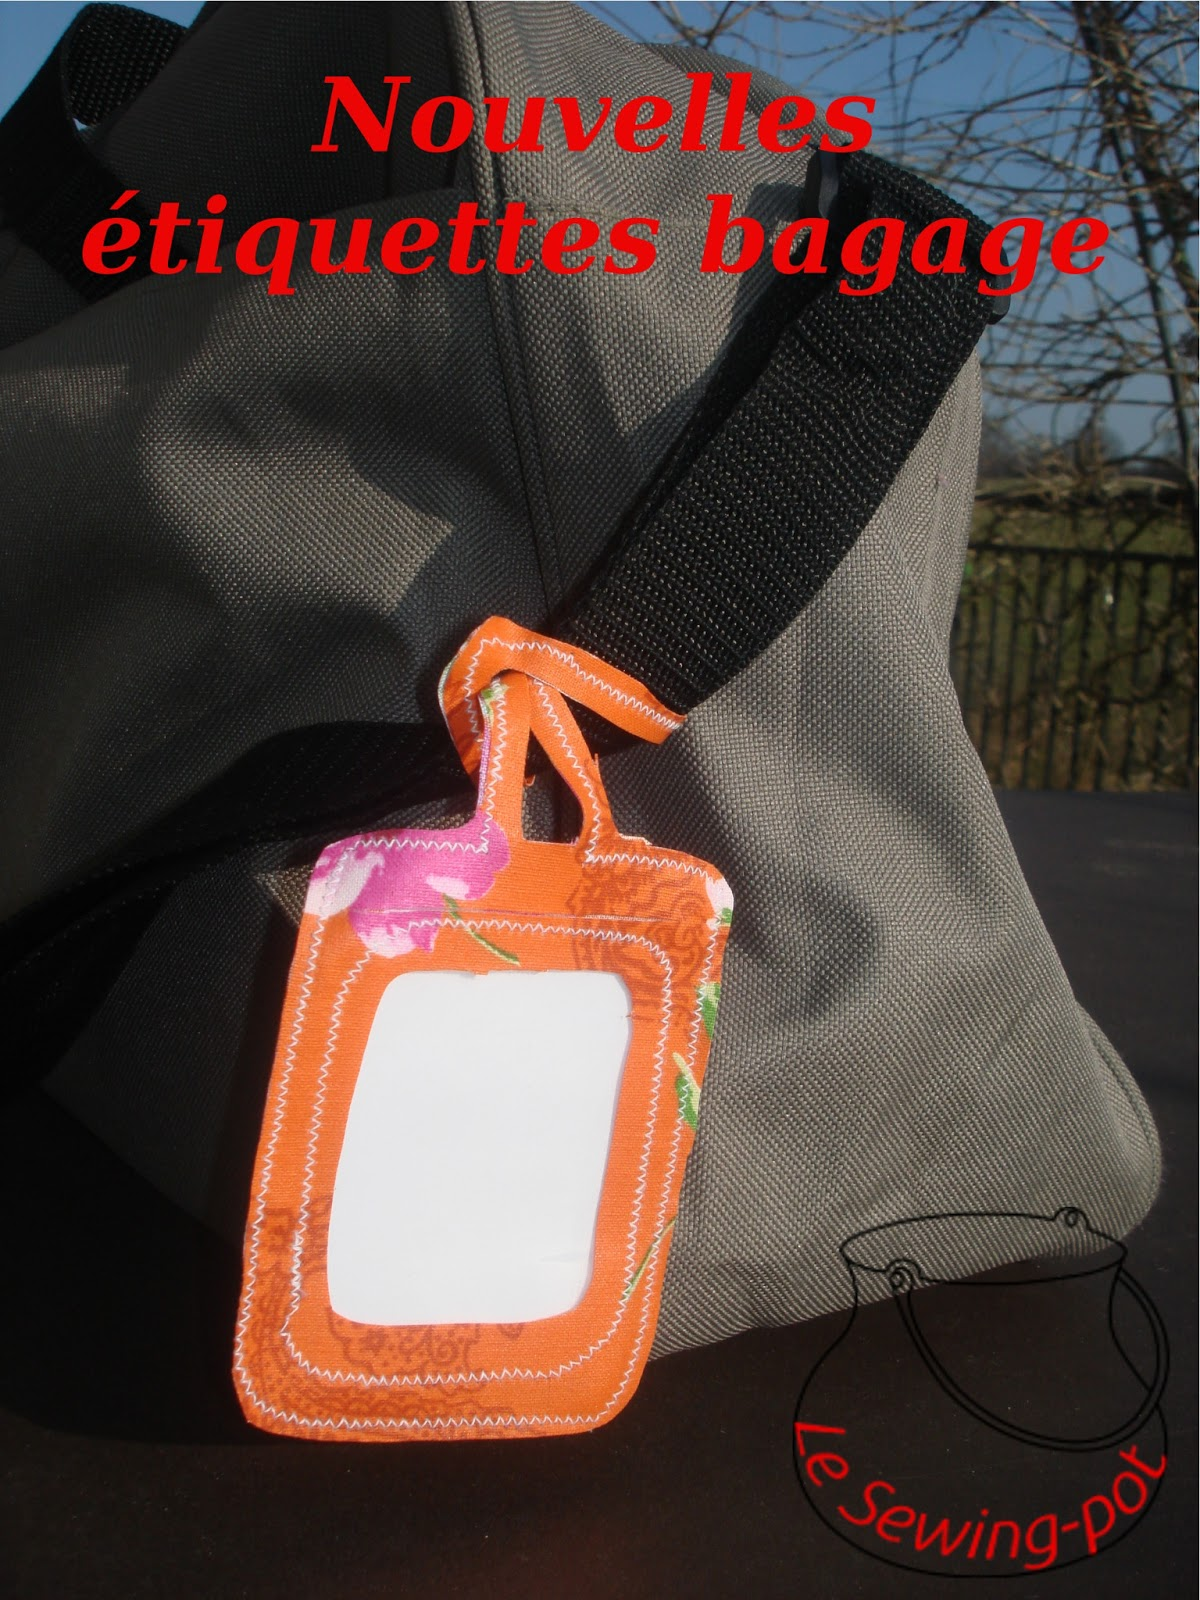 étiquette bagages label luggage